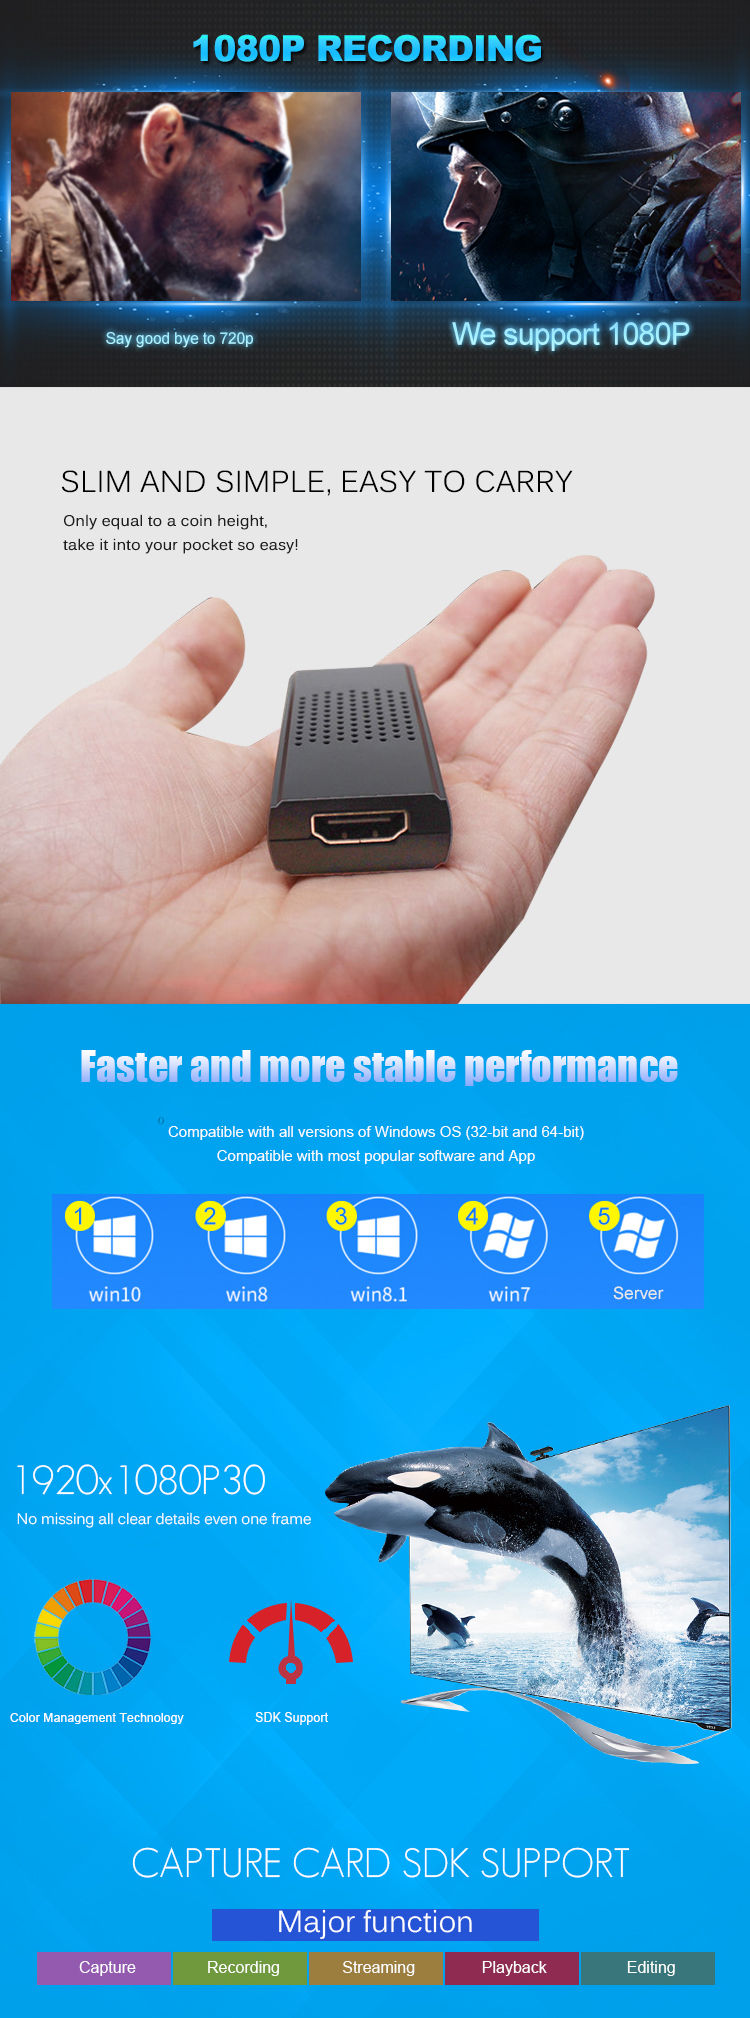 Av To Usb2 0 Video Conference Free Driver Hdmi 2 0 Capture Card - Buy Hdmi  2 0 Capture Card,Free Driver Hdmi 2 0 Capture Card,Video Conference Free